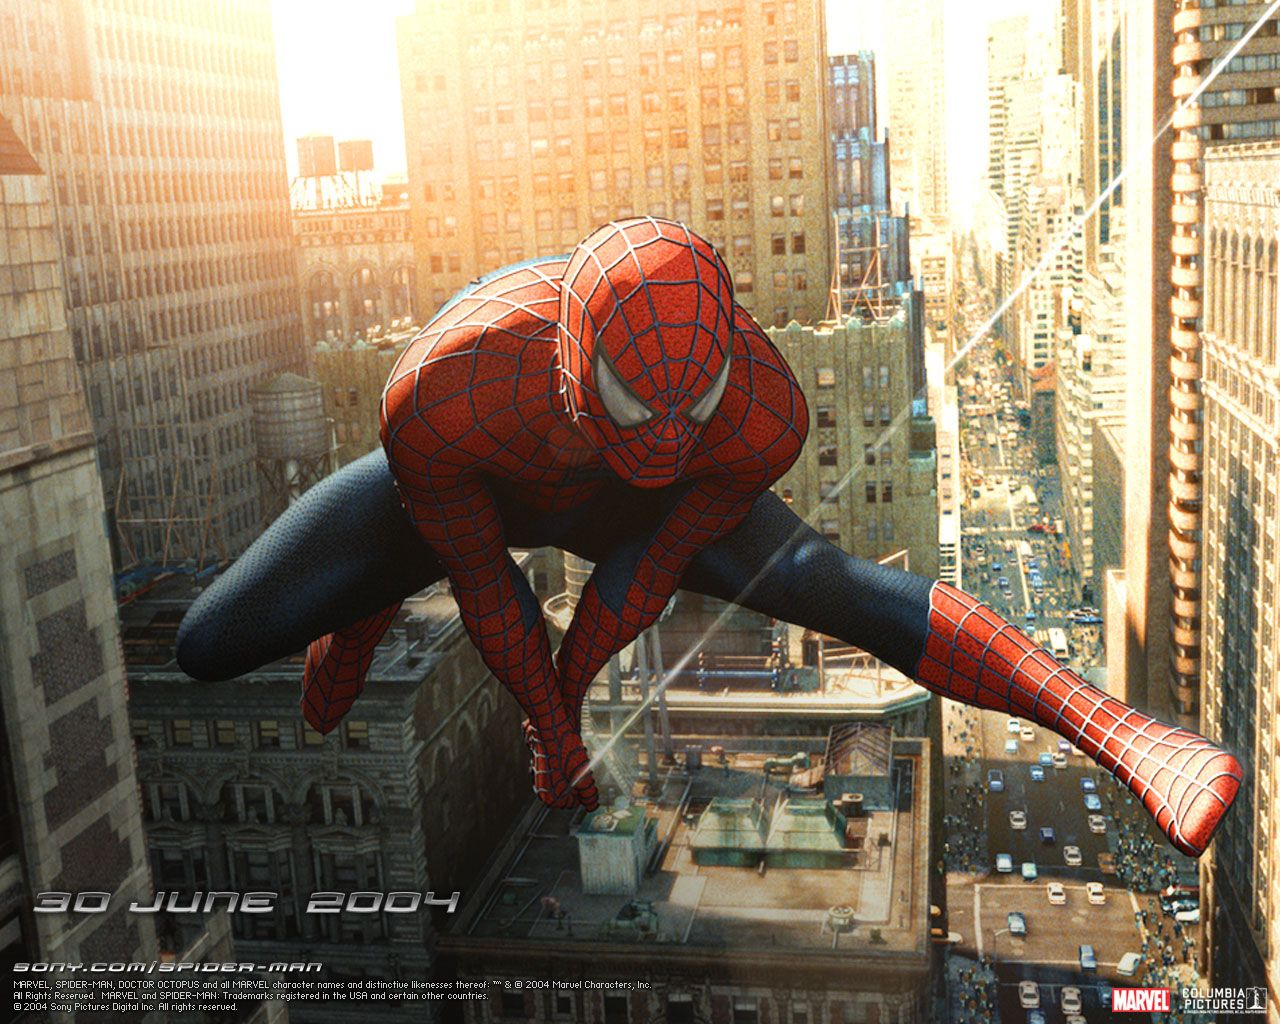 spider-man_movie_image_01.jpg